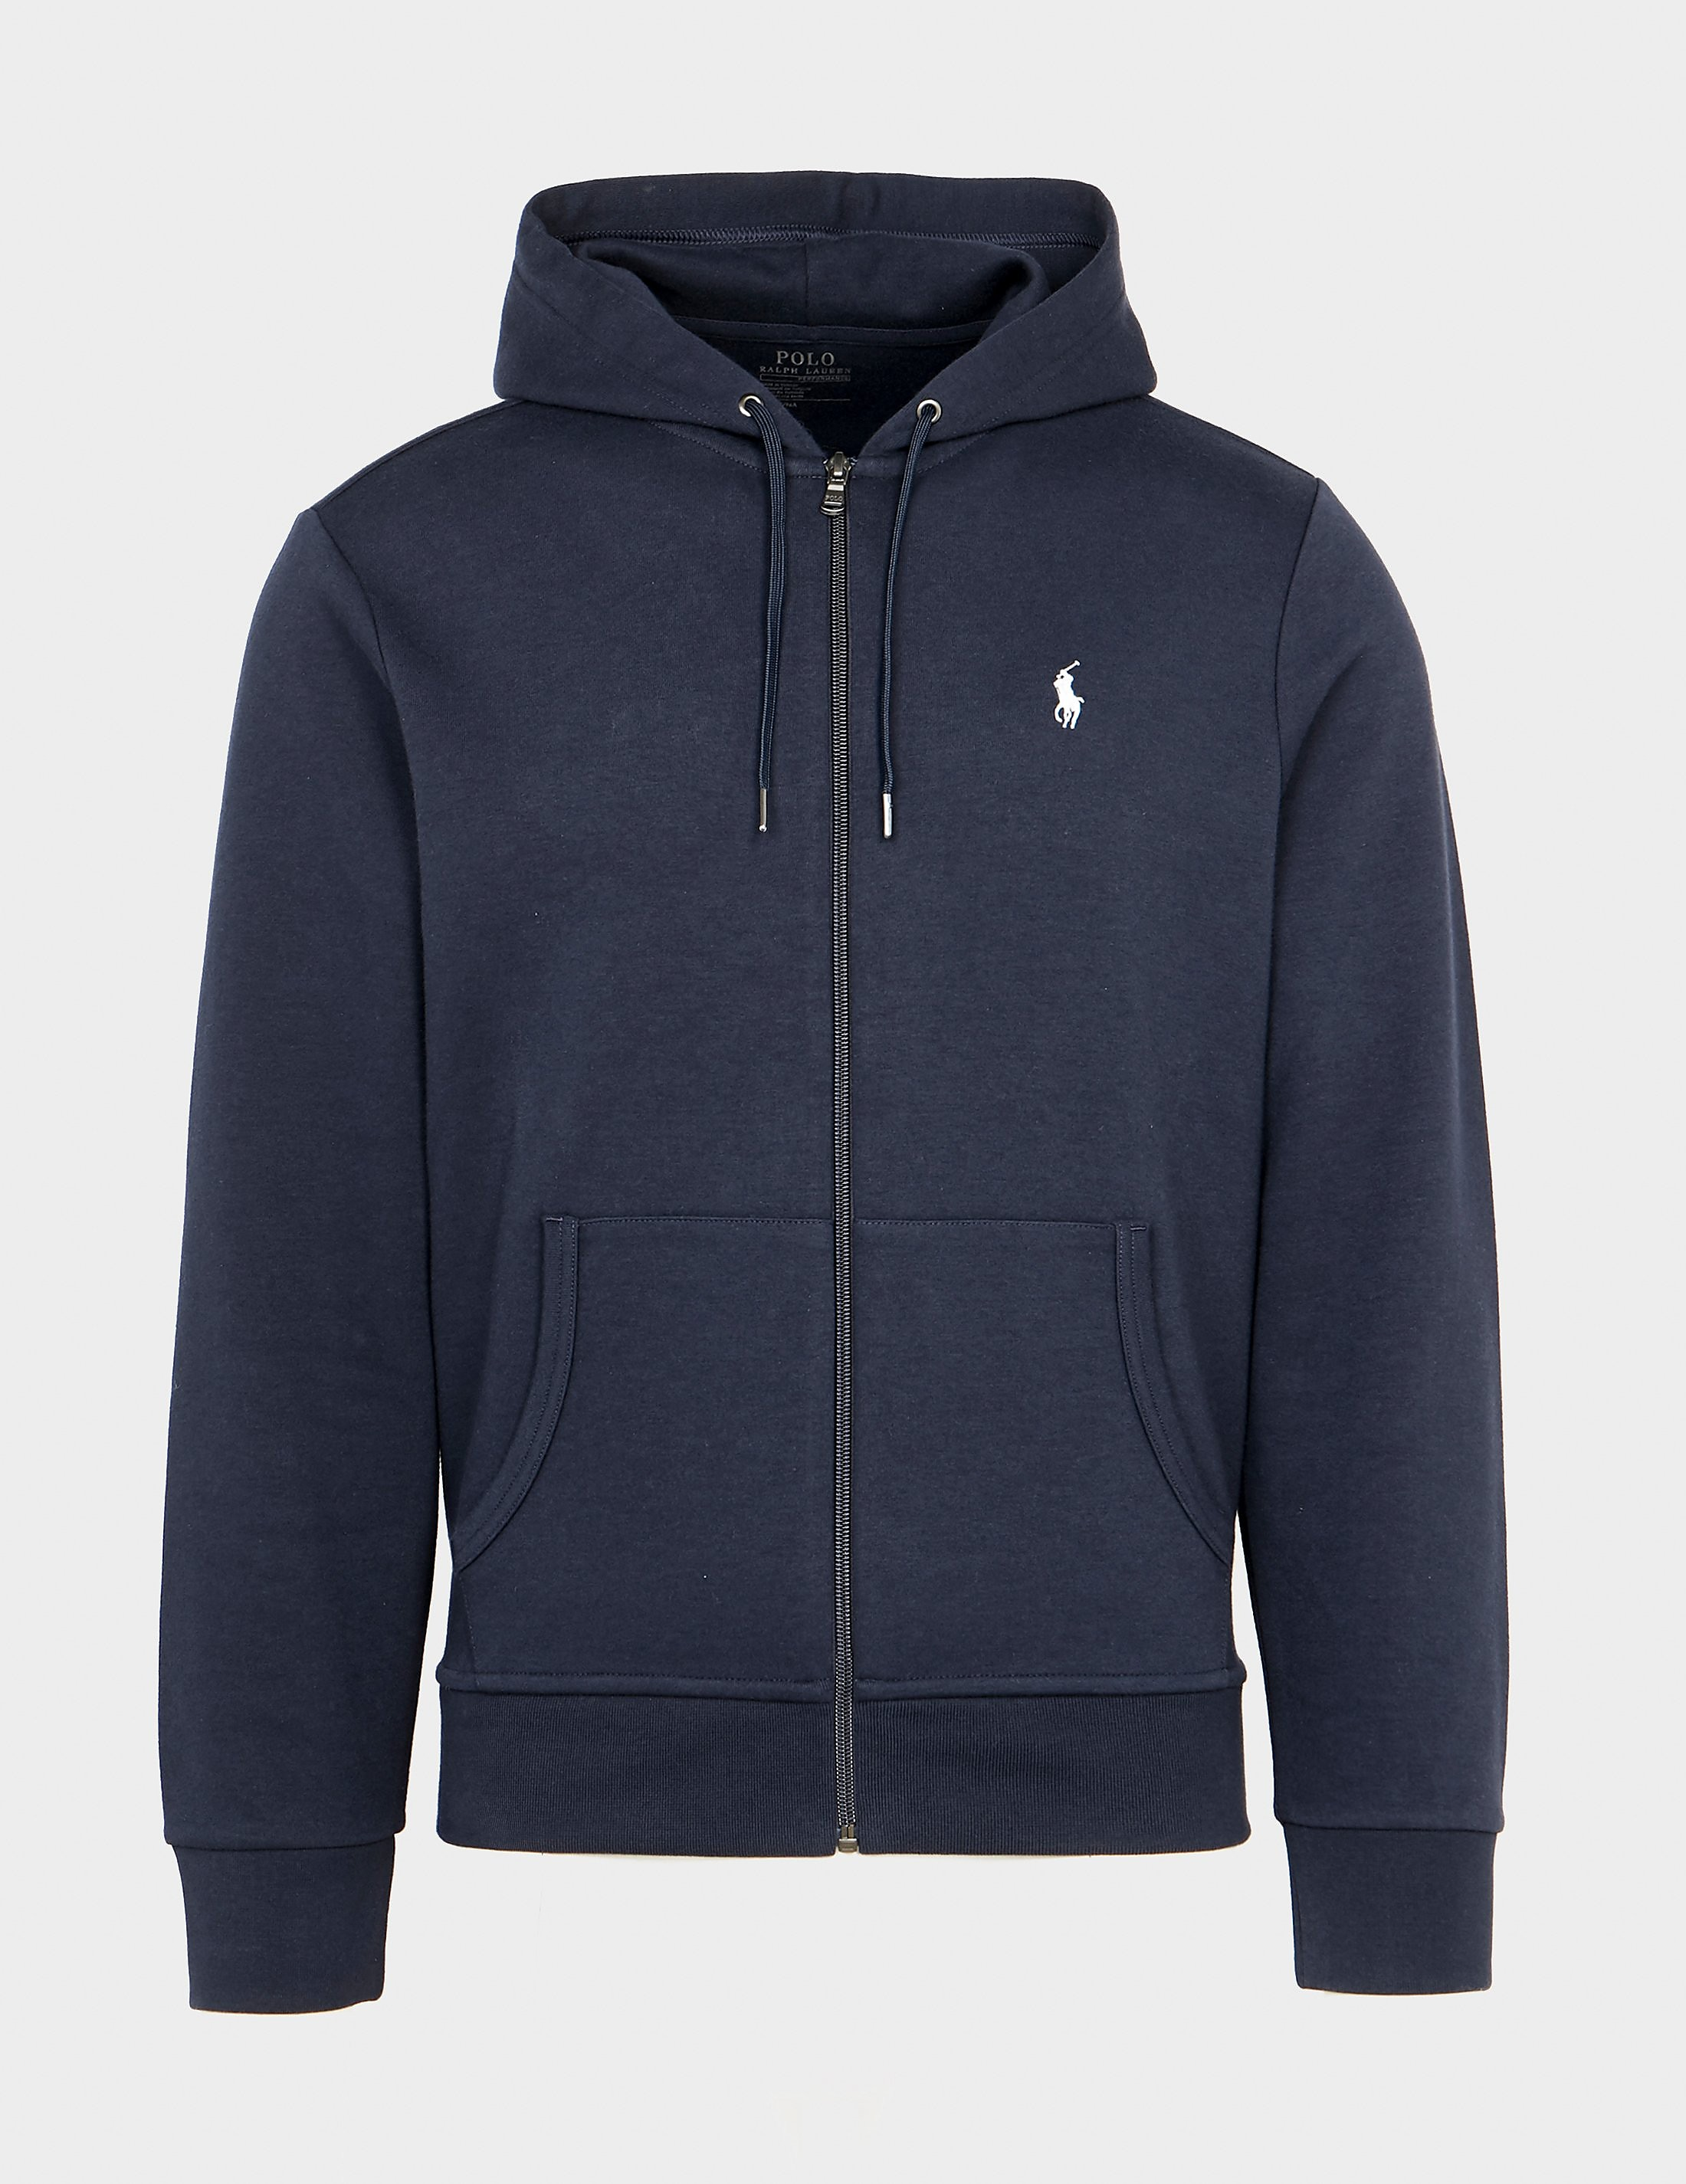 Polo Ralph Lauren Full Zip Fleece Hoody